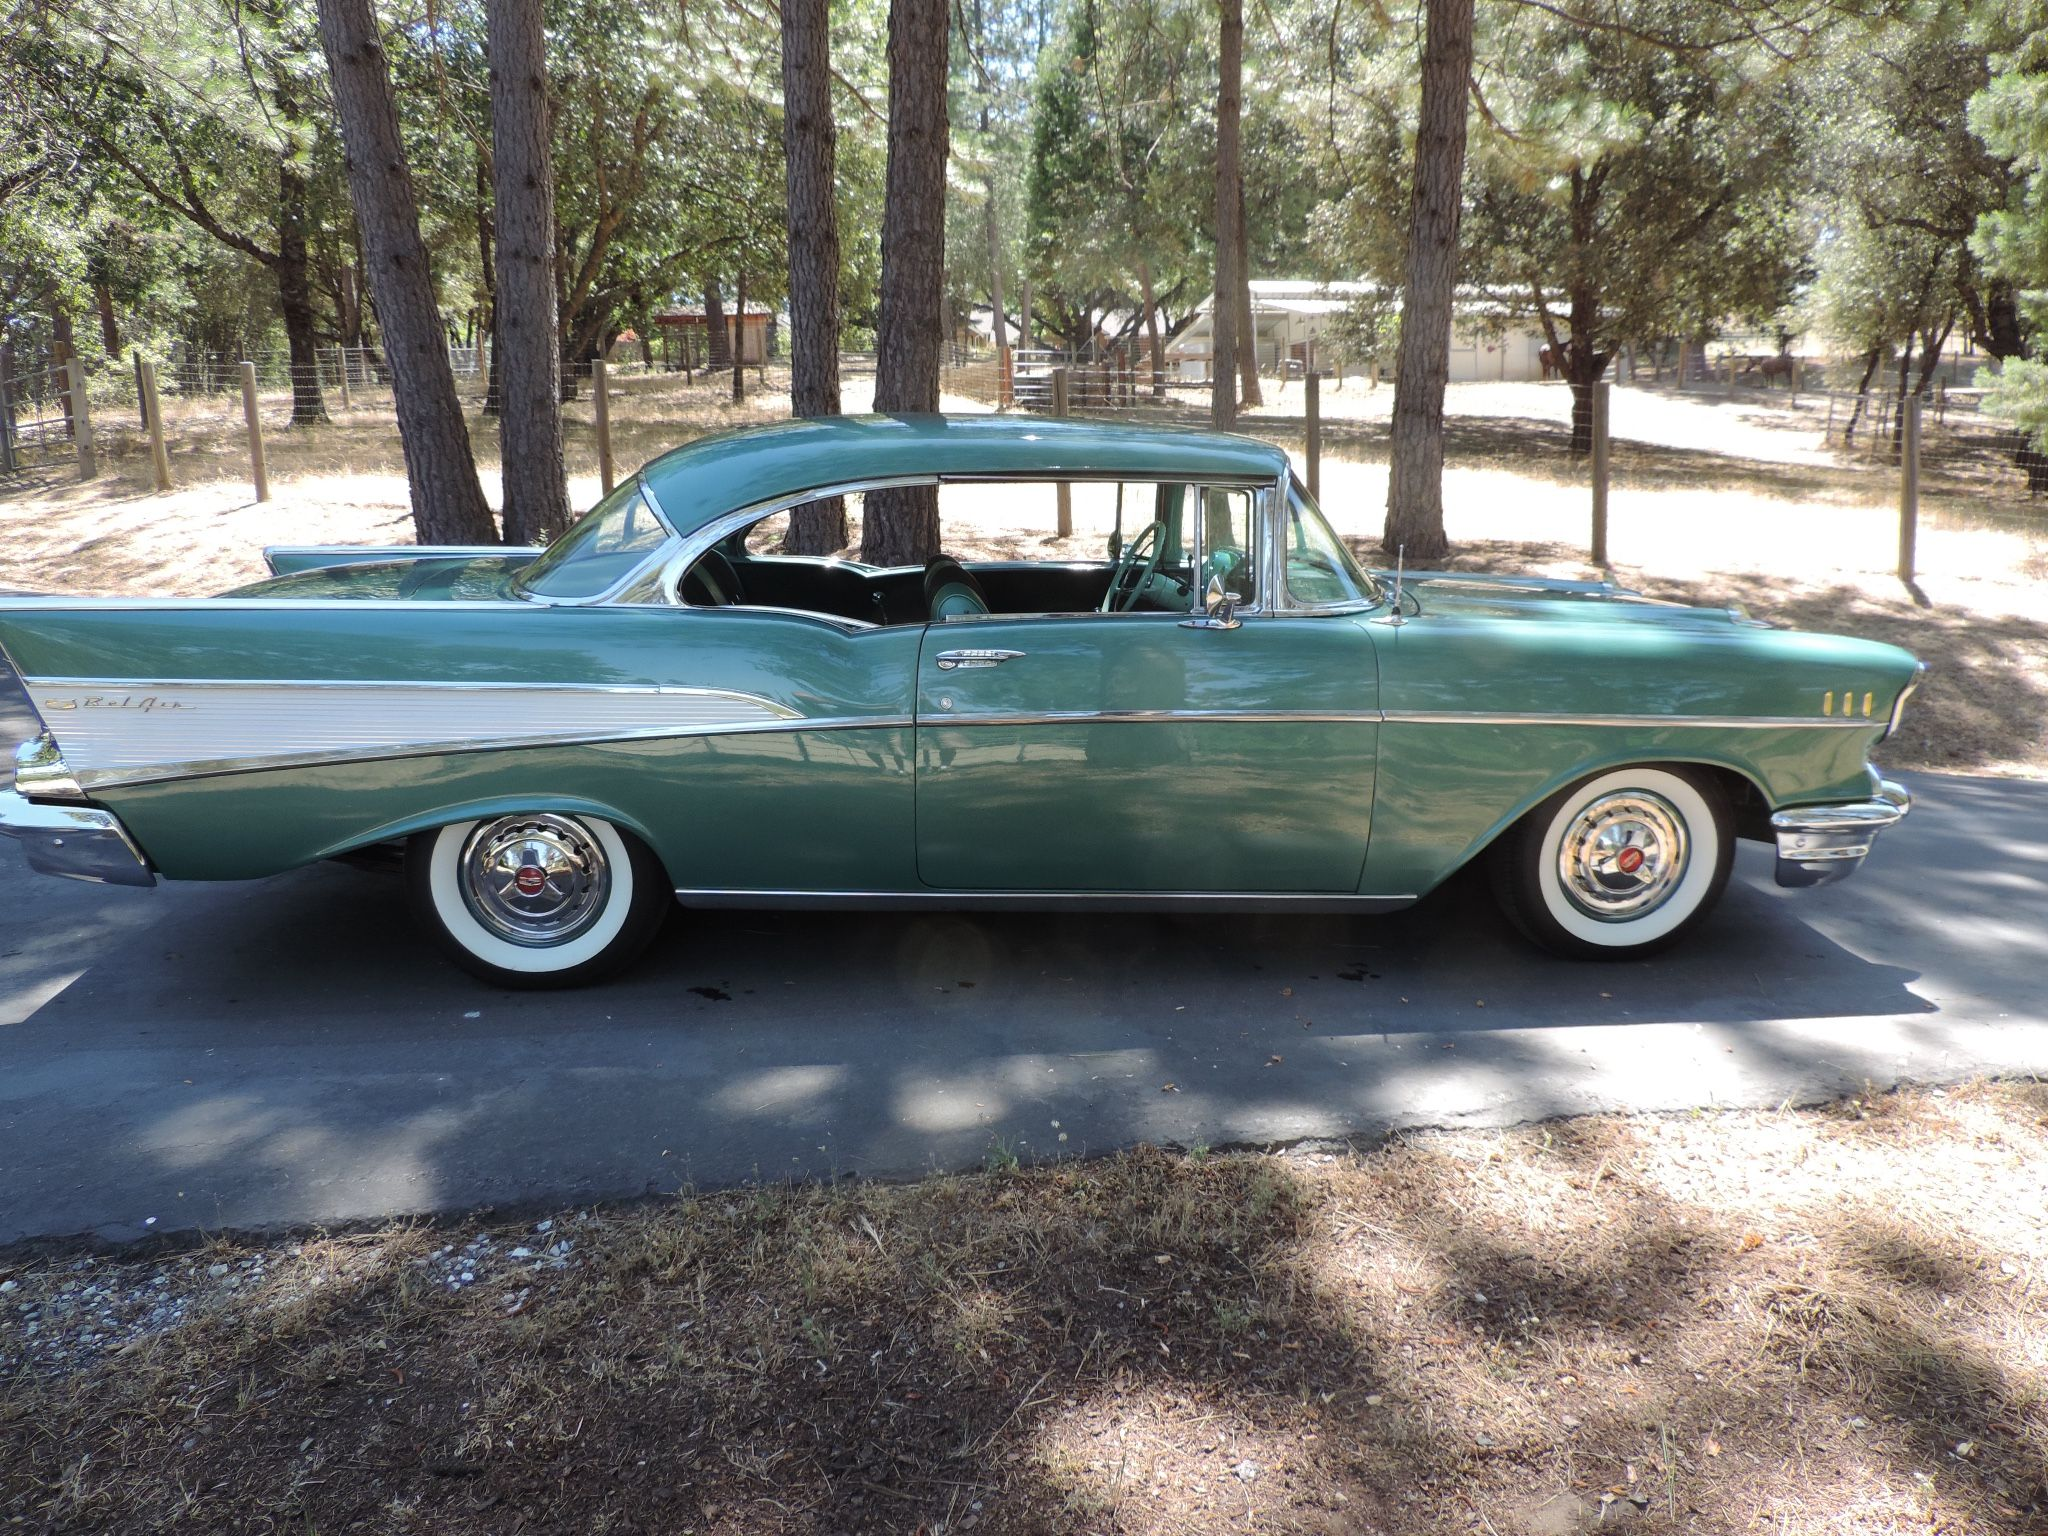 1957 chevy convertible sale mitula cars -  57 Belair Luxury Cars Pinterest Chevrolet Cars And 1957 Chevrolet